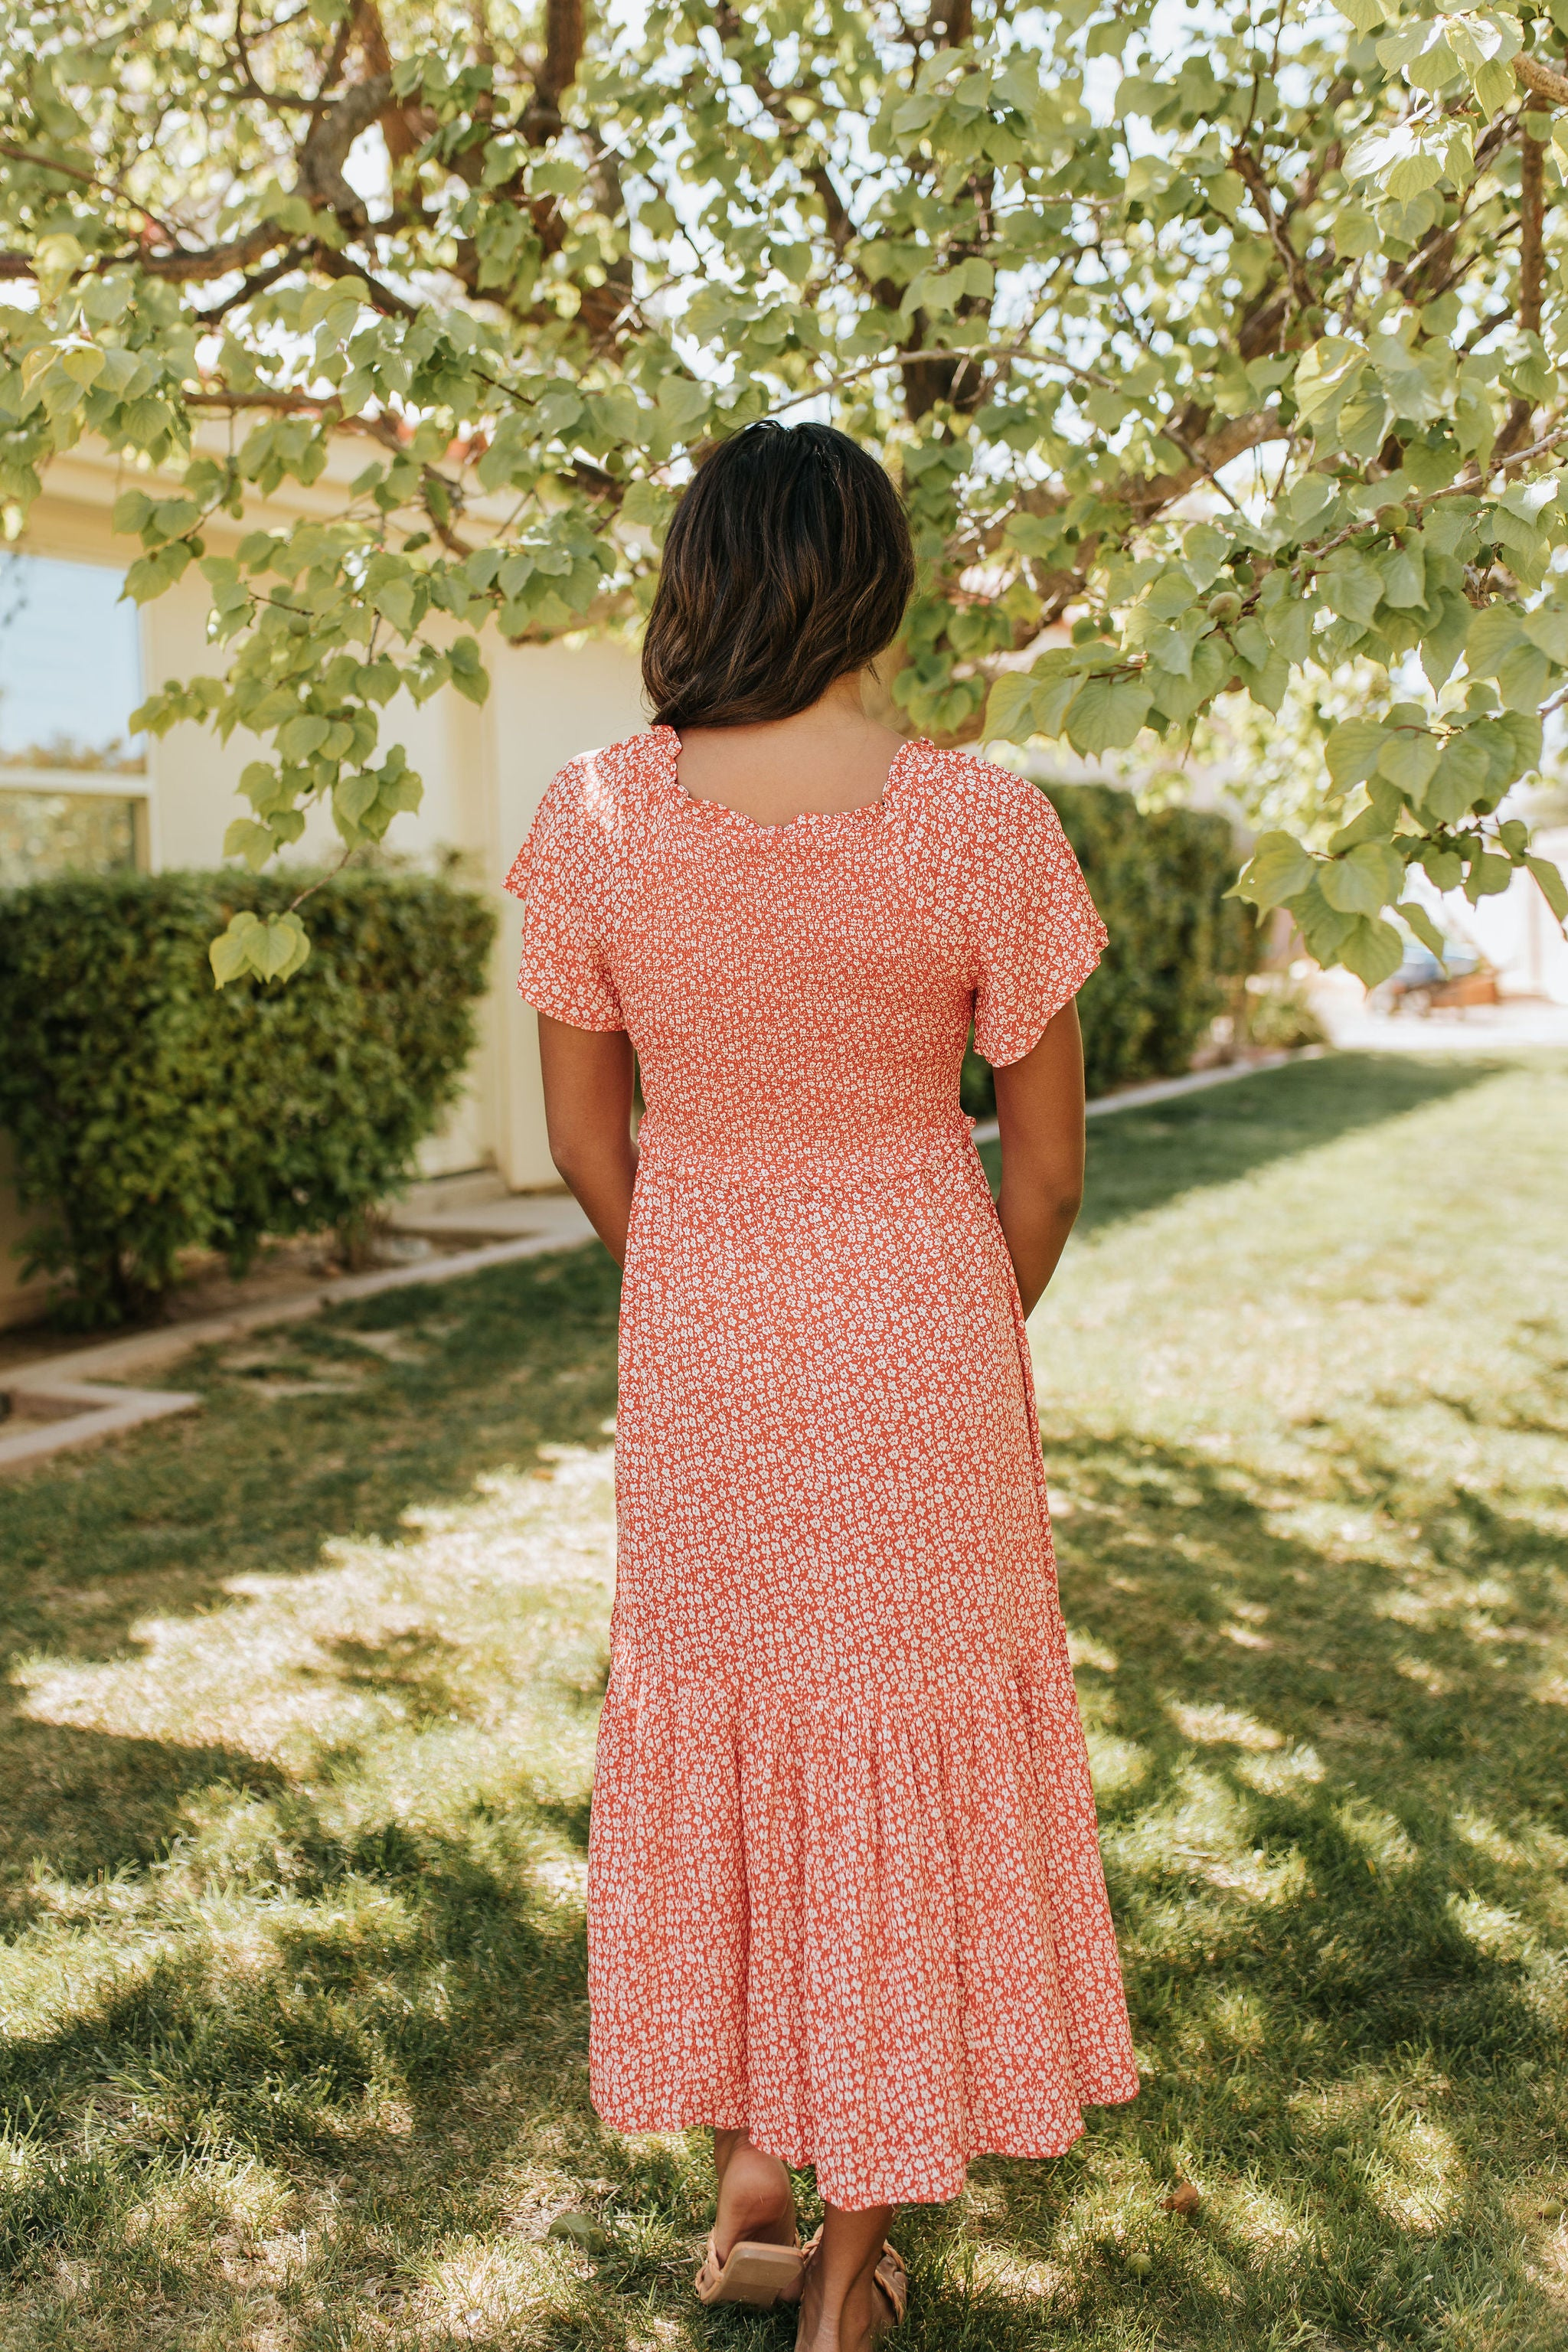 THE TIME FOR SUMMER MIDI DRESS IN TOMATO